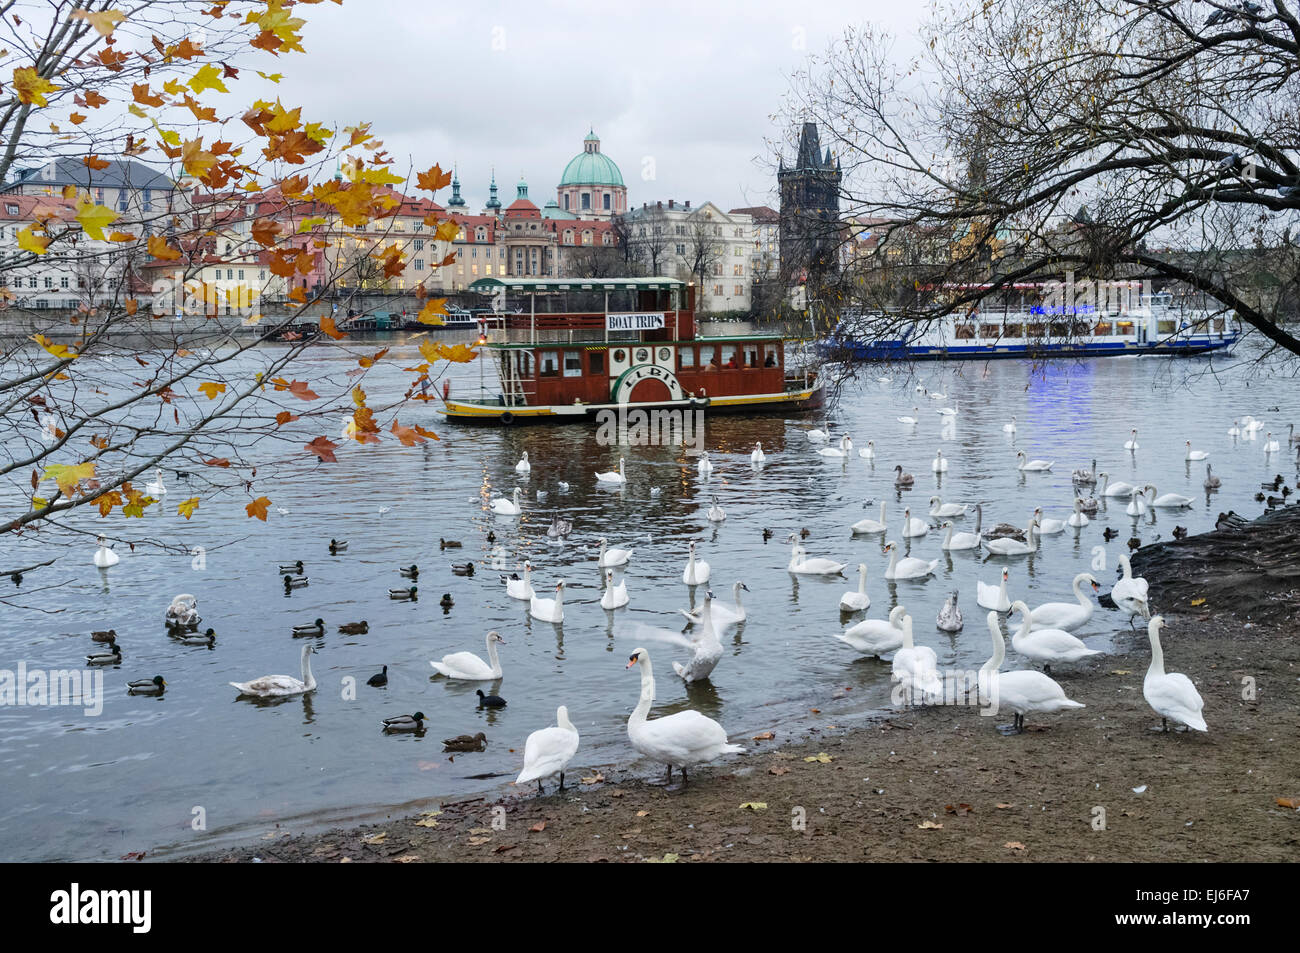 Swans and old tourist boat at the Vltava river. Prague, Czech Republic - Stock Image